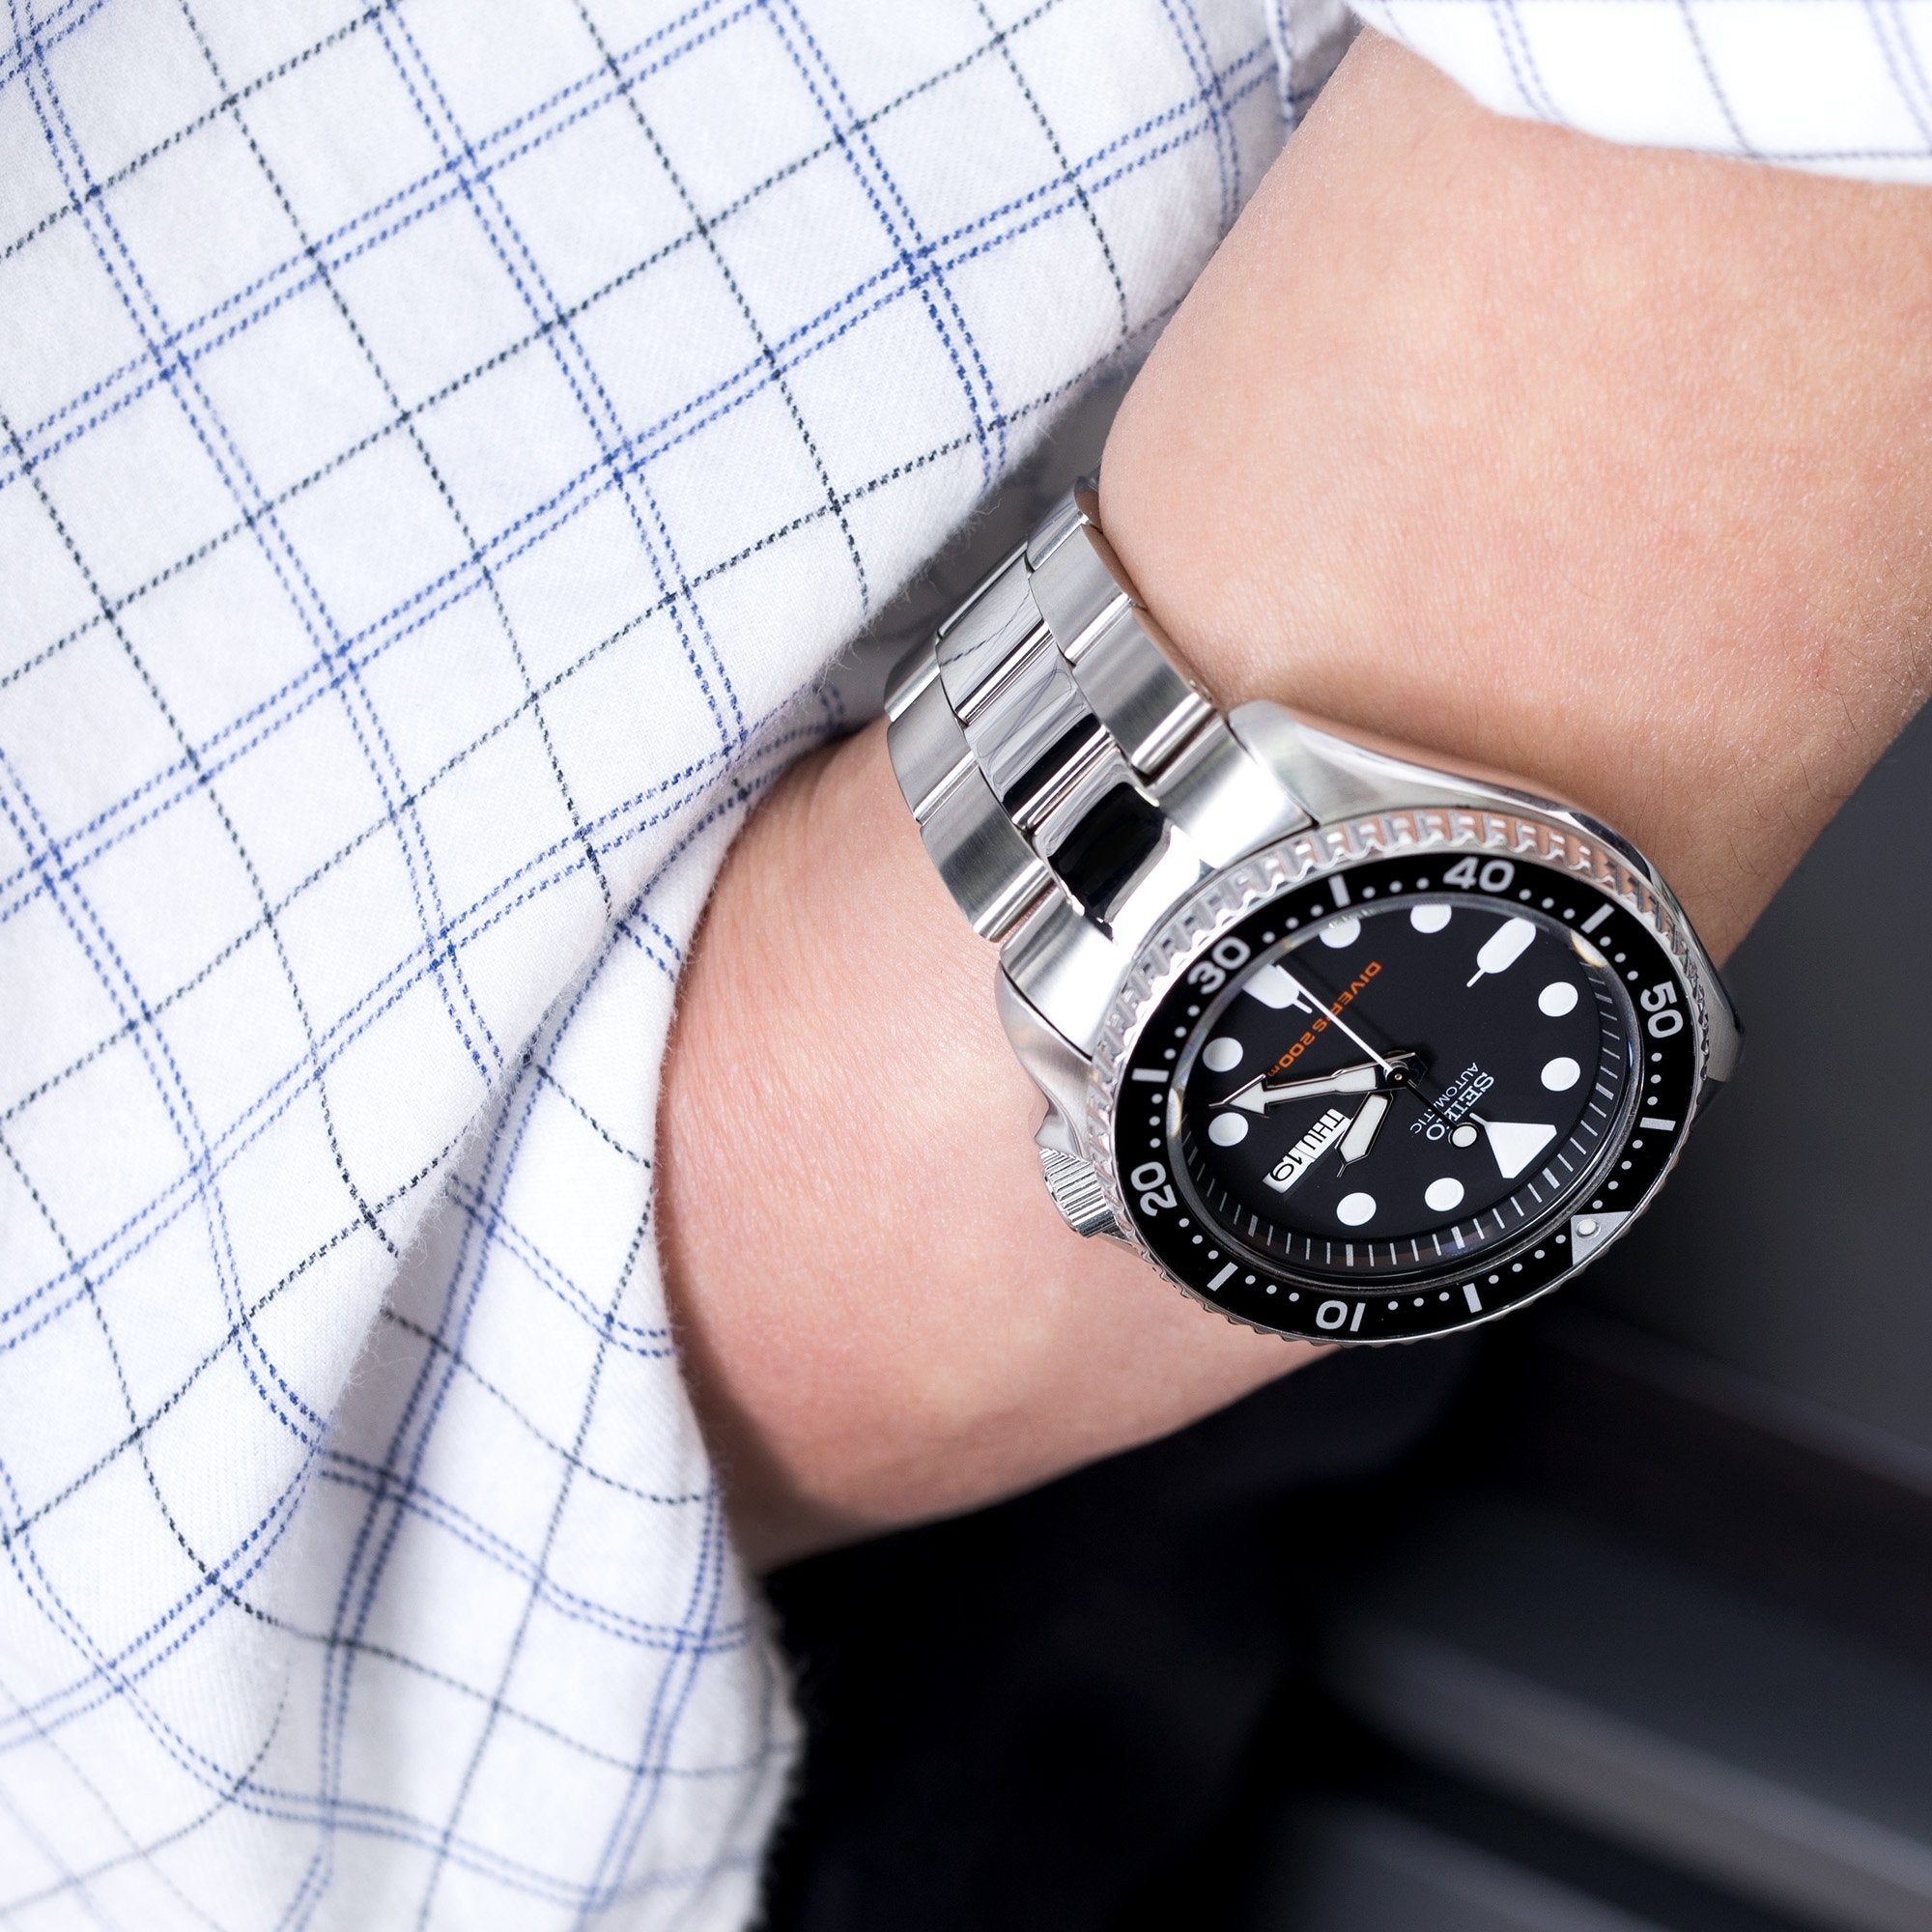 Upgrade your Seiko to last for eternity and make it more valuable than its price tag